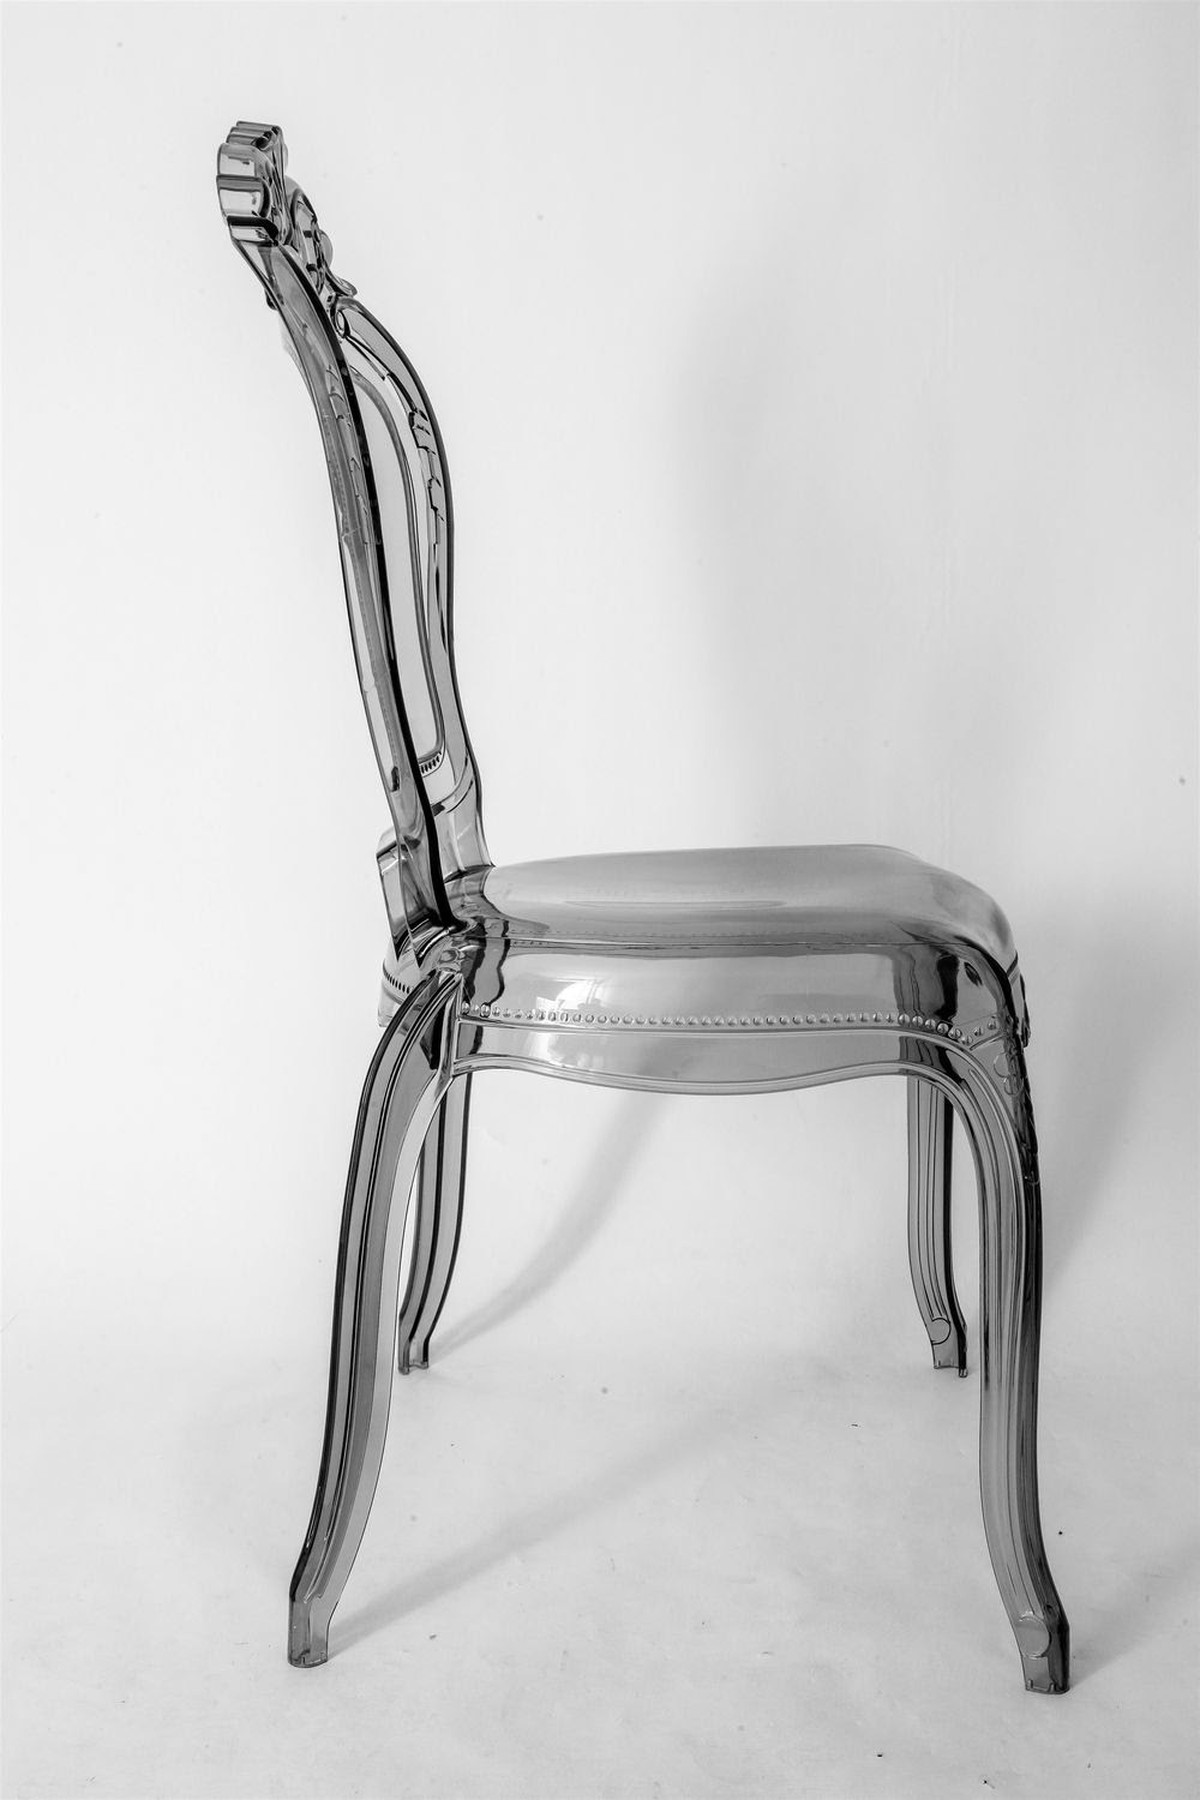 ghost chairs for sale back pillow office chair philippines secondhand hotel furniture banquet 50x amazing